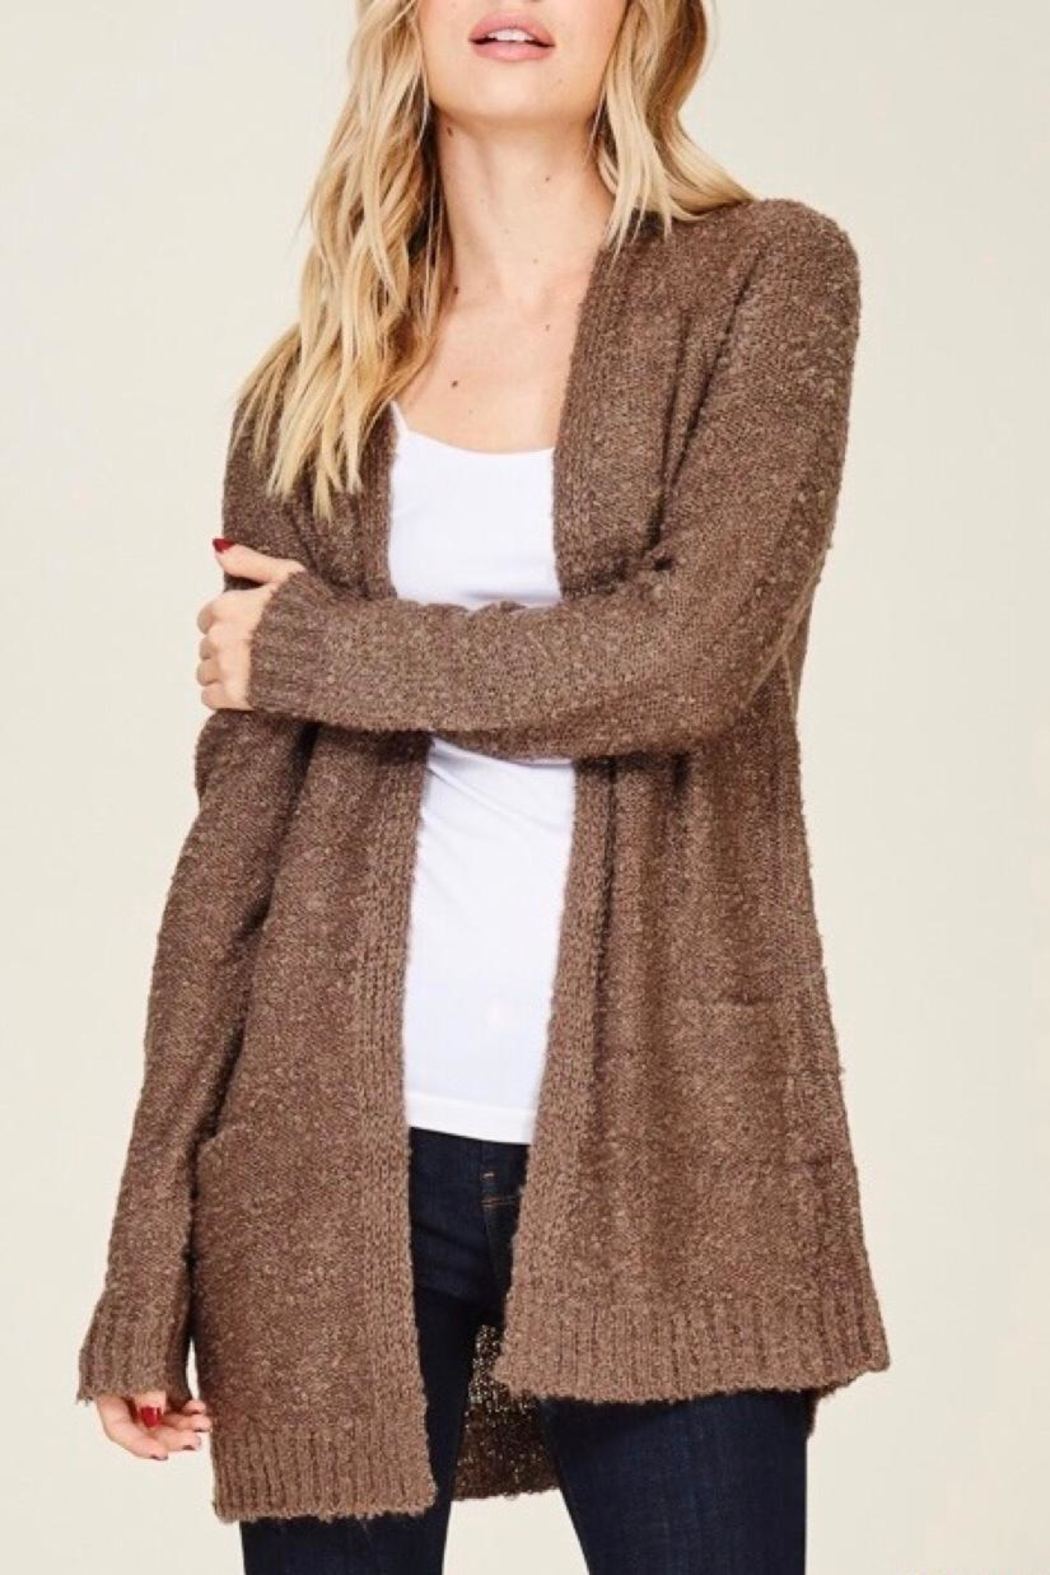 8f4a7143913 Staccato Bouclé Cardigan from Washington by LuLu's Boutique — Shoptiques